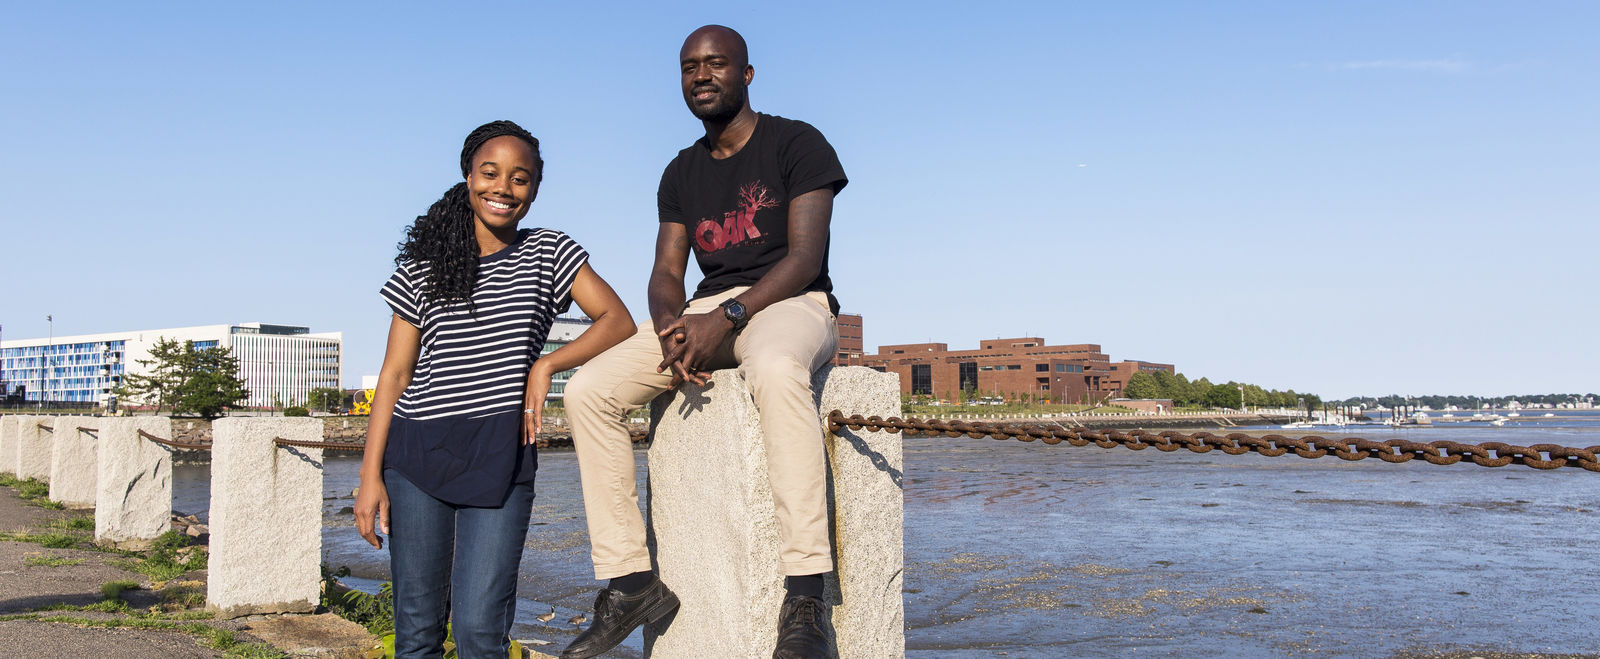 Two people smile on the Boston Harbor.